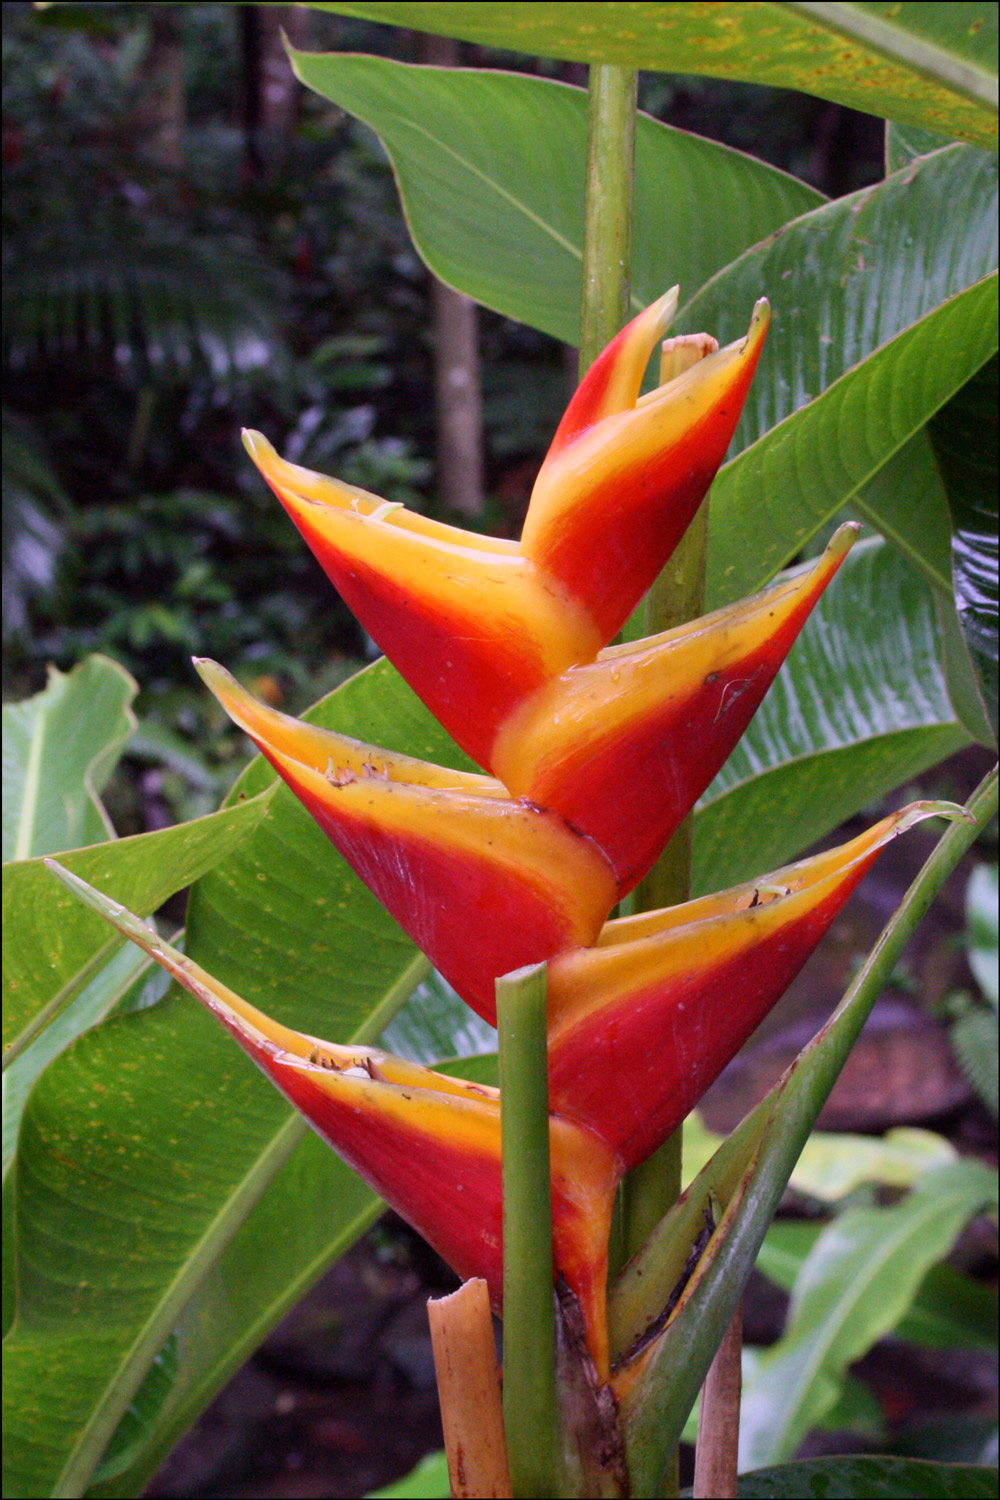 False Bird of Paradise (Heliconia wagneriana)